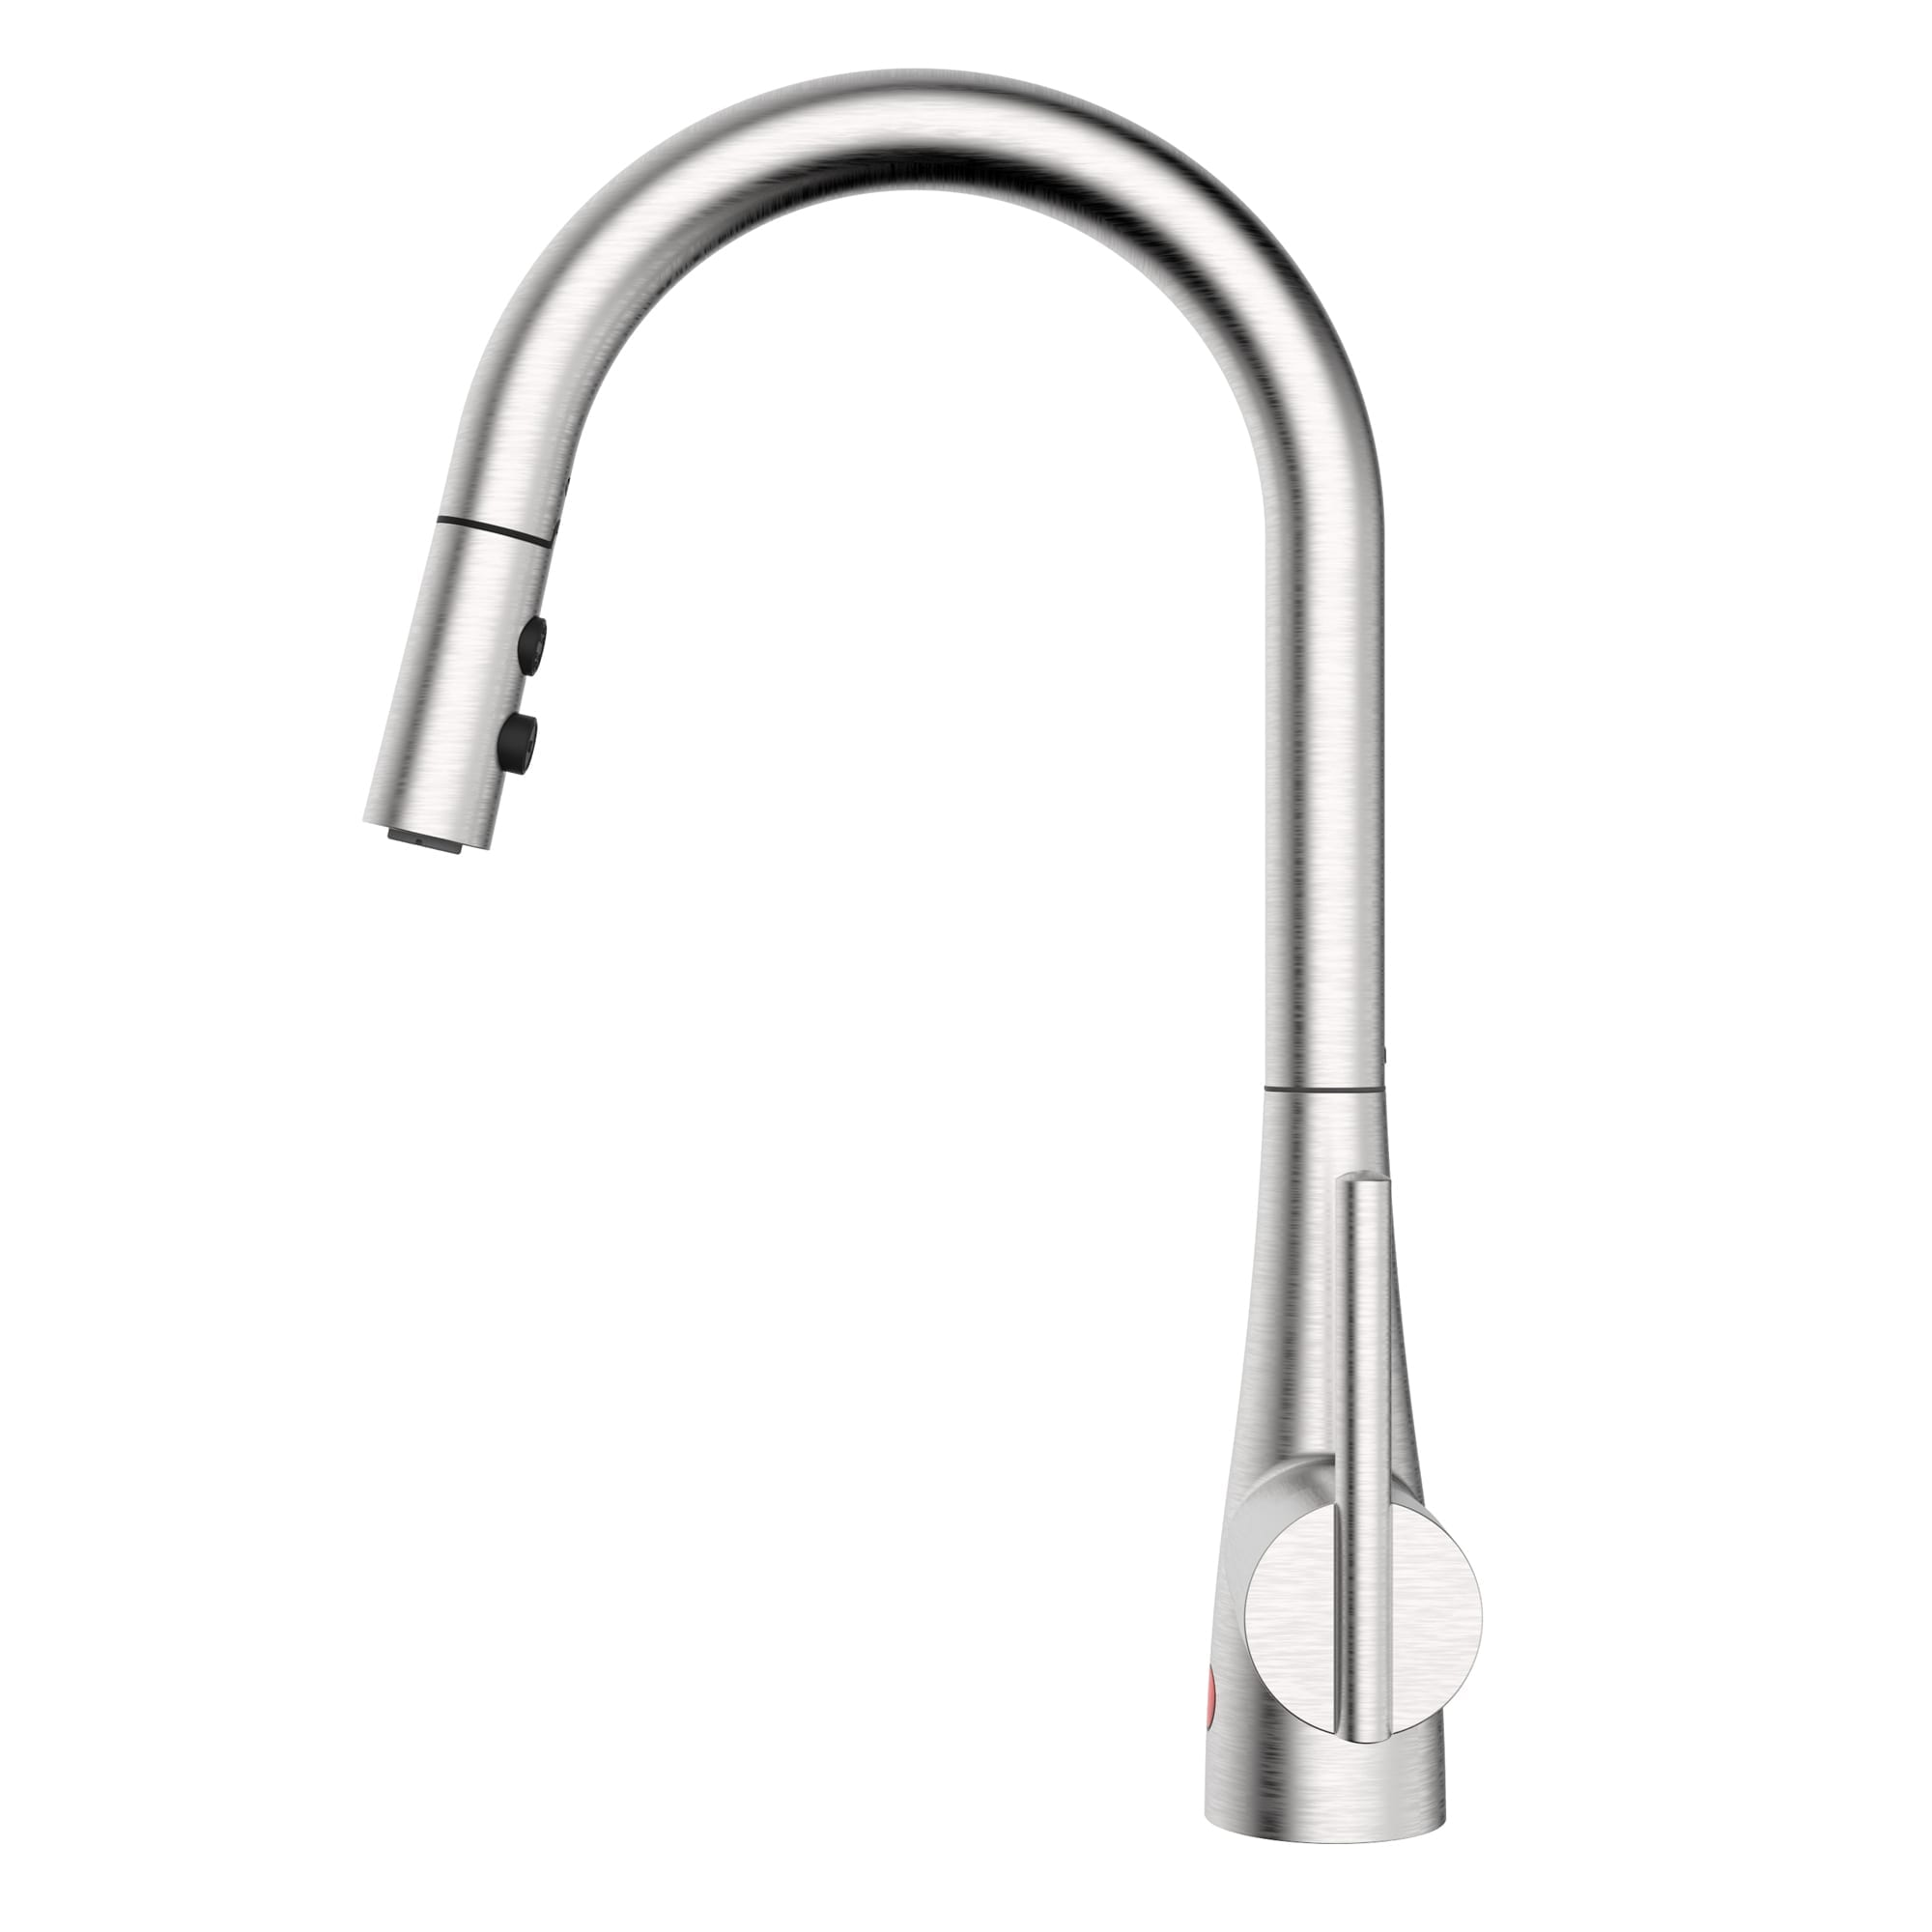 product accessories solid tub filler faucet water spout brass rotation faucets single tap bath tube shower bathroom